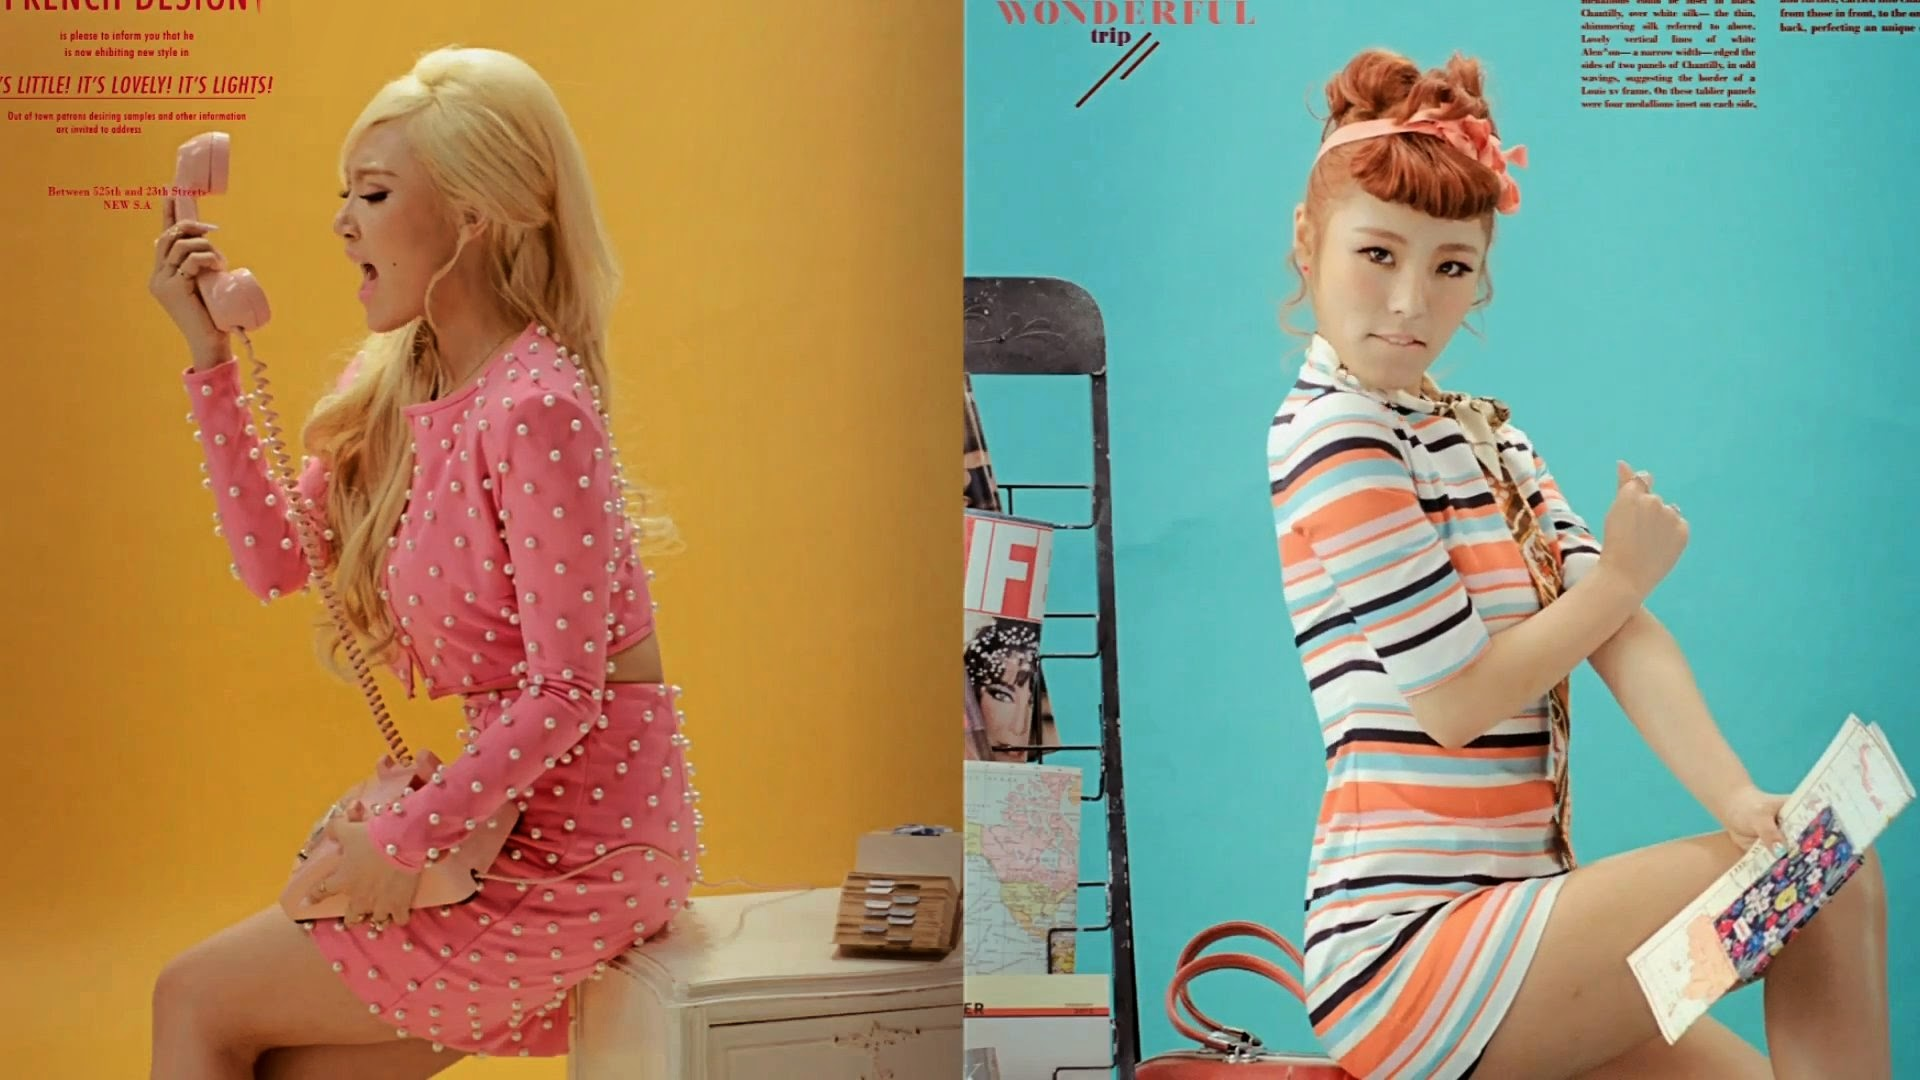 Mamamoo's Hwasa and Wheein in Ahh Oop MV